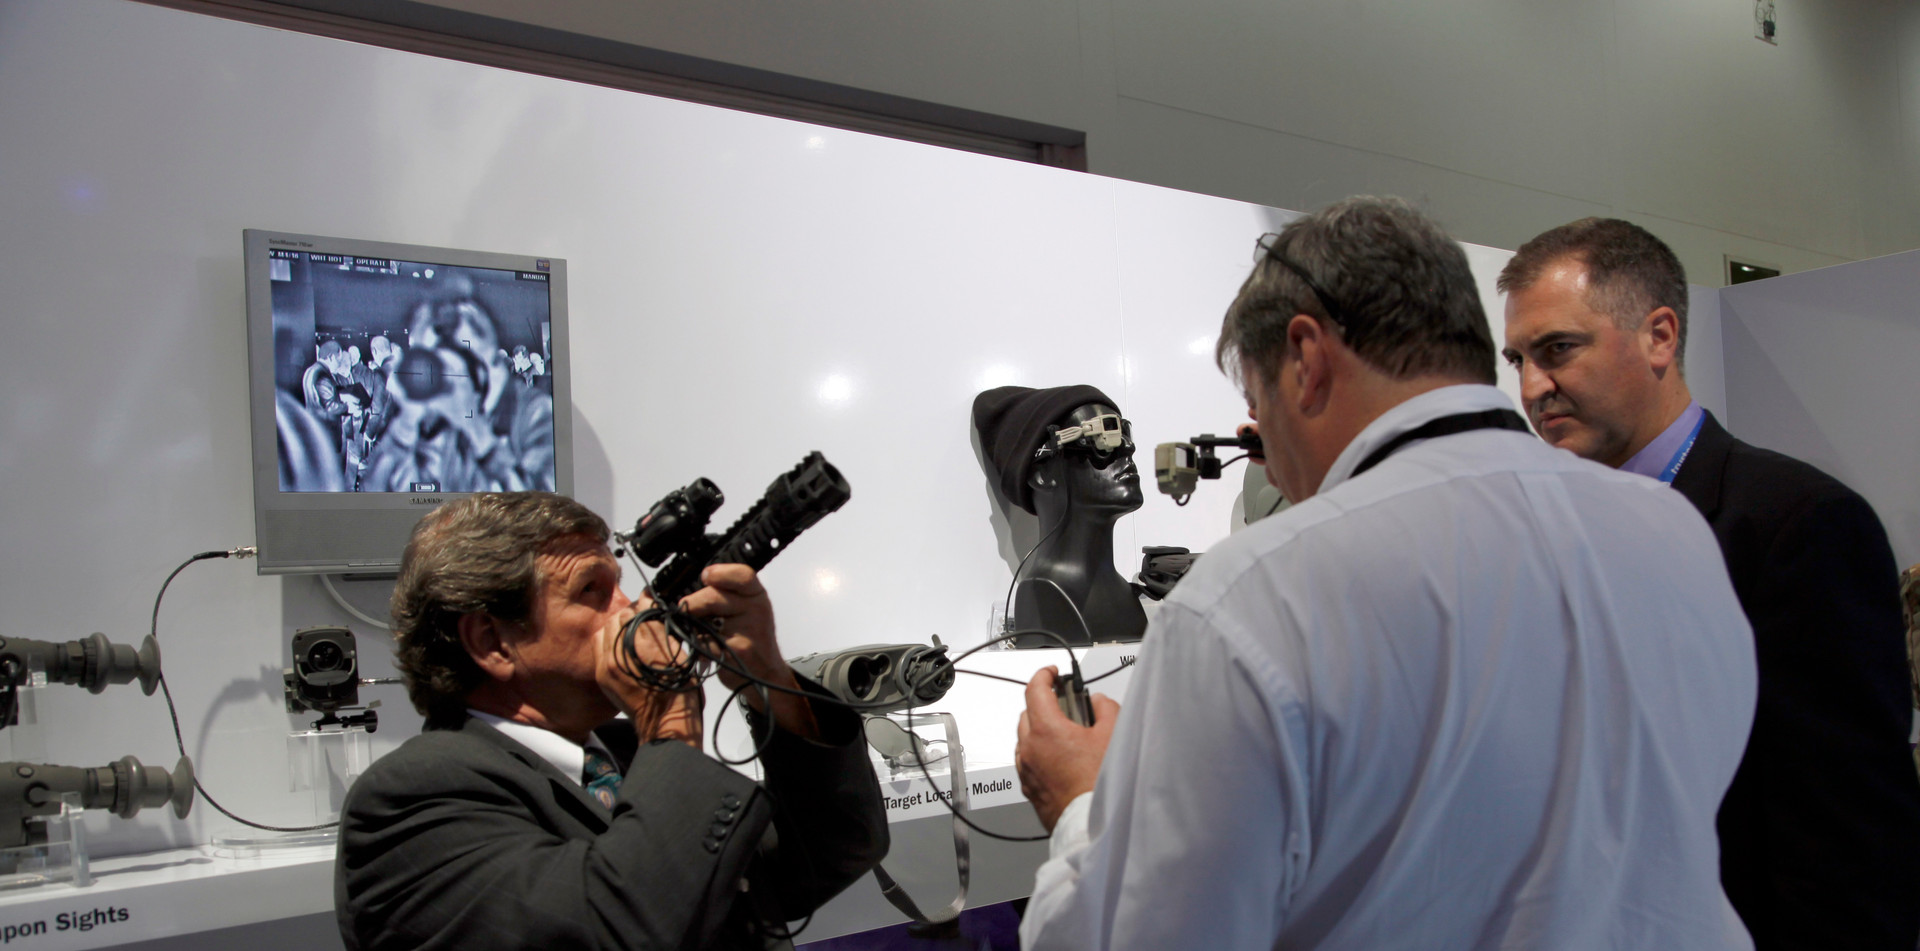 Visitors and traders at the Defence and Security Equipment International exhibition in London, UK